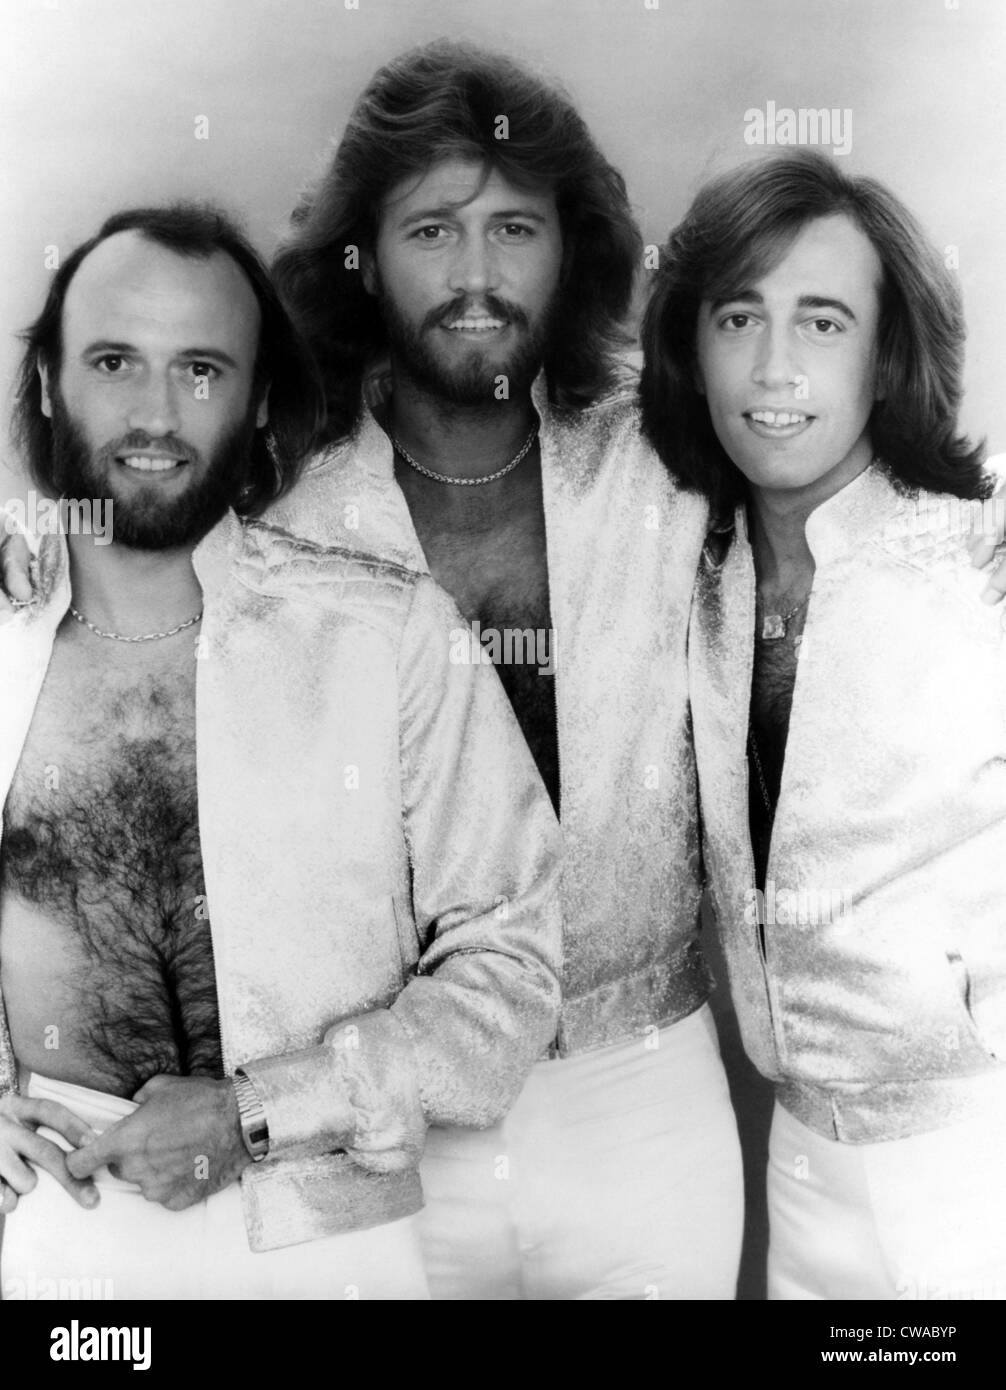 The Bee Gees, Maurice Gibb, Barry Gibb, Robin Gibb, 1979. Courtesy: CSU Archives/Everett Collection - Stock Image